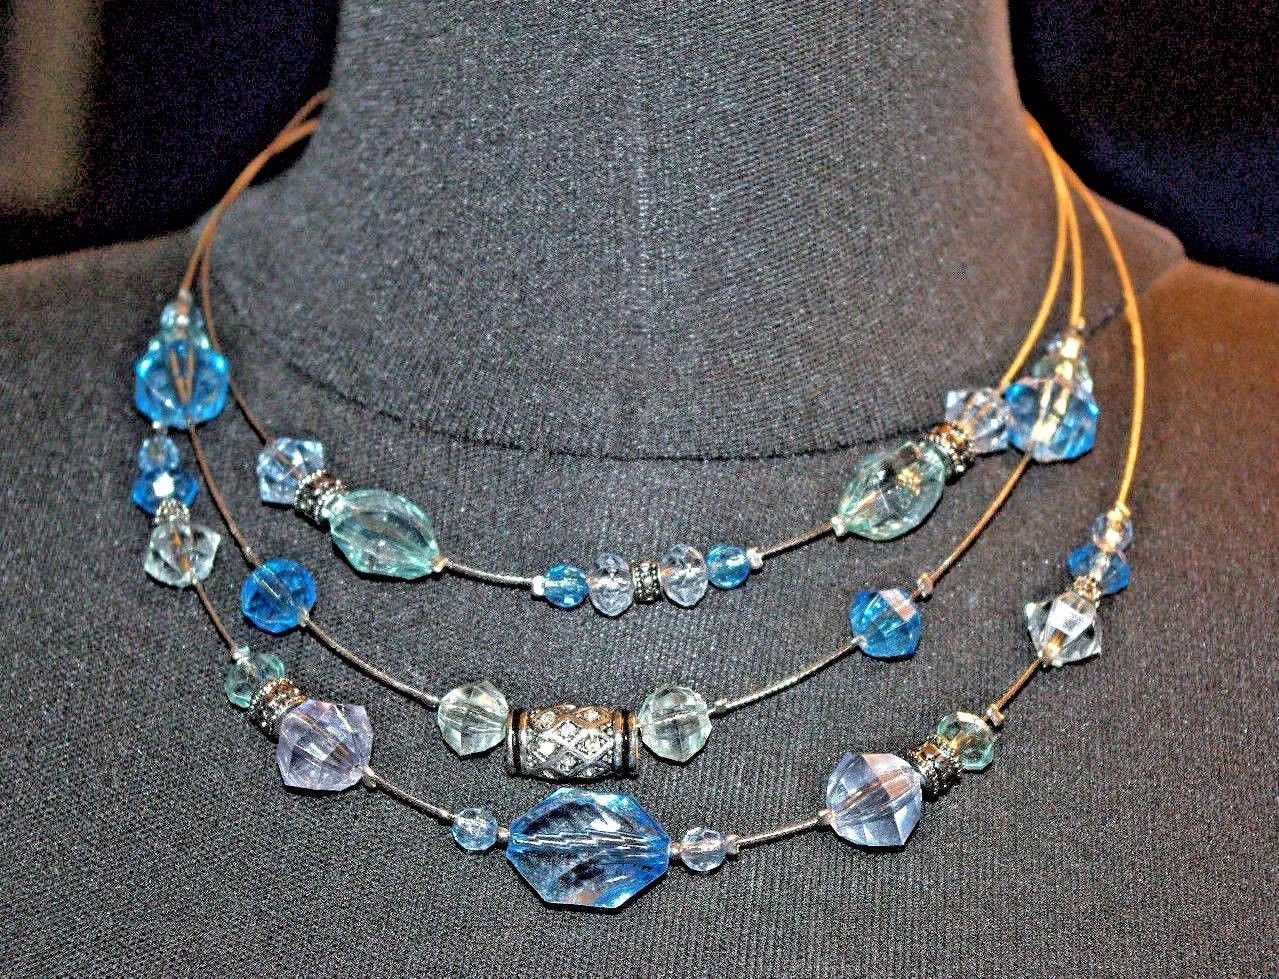 Napier 3 Strand Wire Necklace Blue Clear & Silver Beads Vintage Necklace image 4